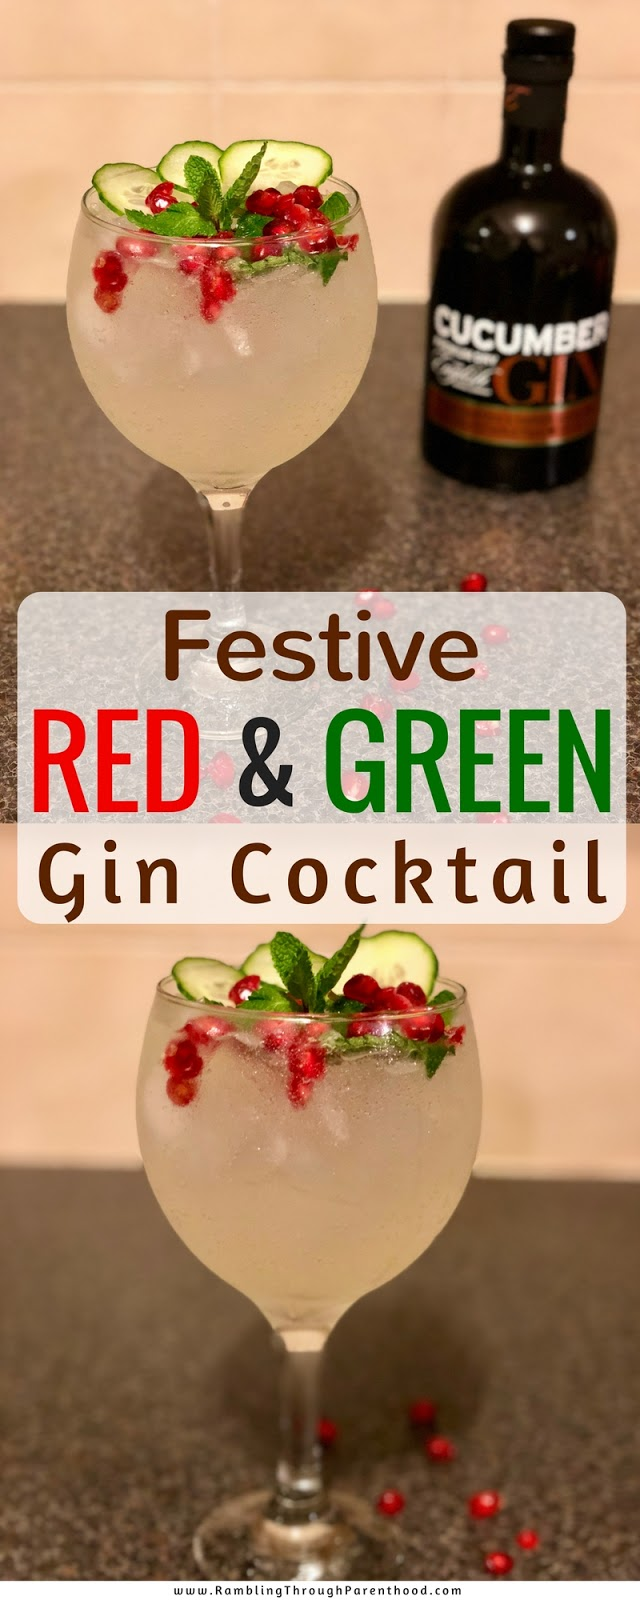 This Red and Green Gin Cocktail is the perfect drink for this festive season. Liven up your Christmas or New Year party with this quick and easy gin cocktail recipe.